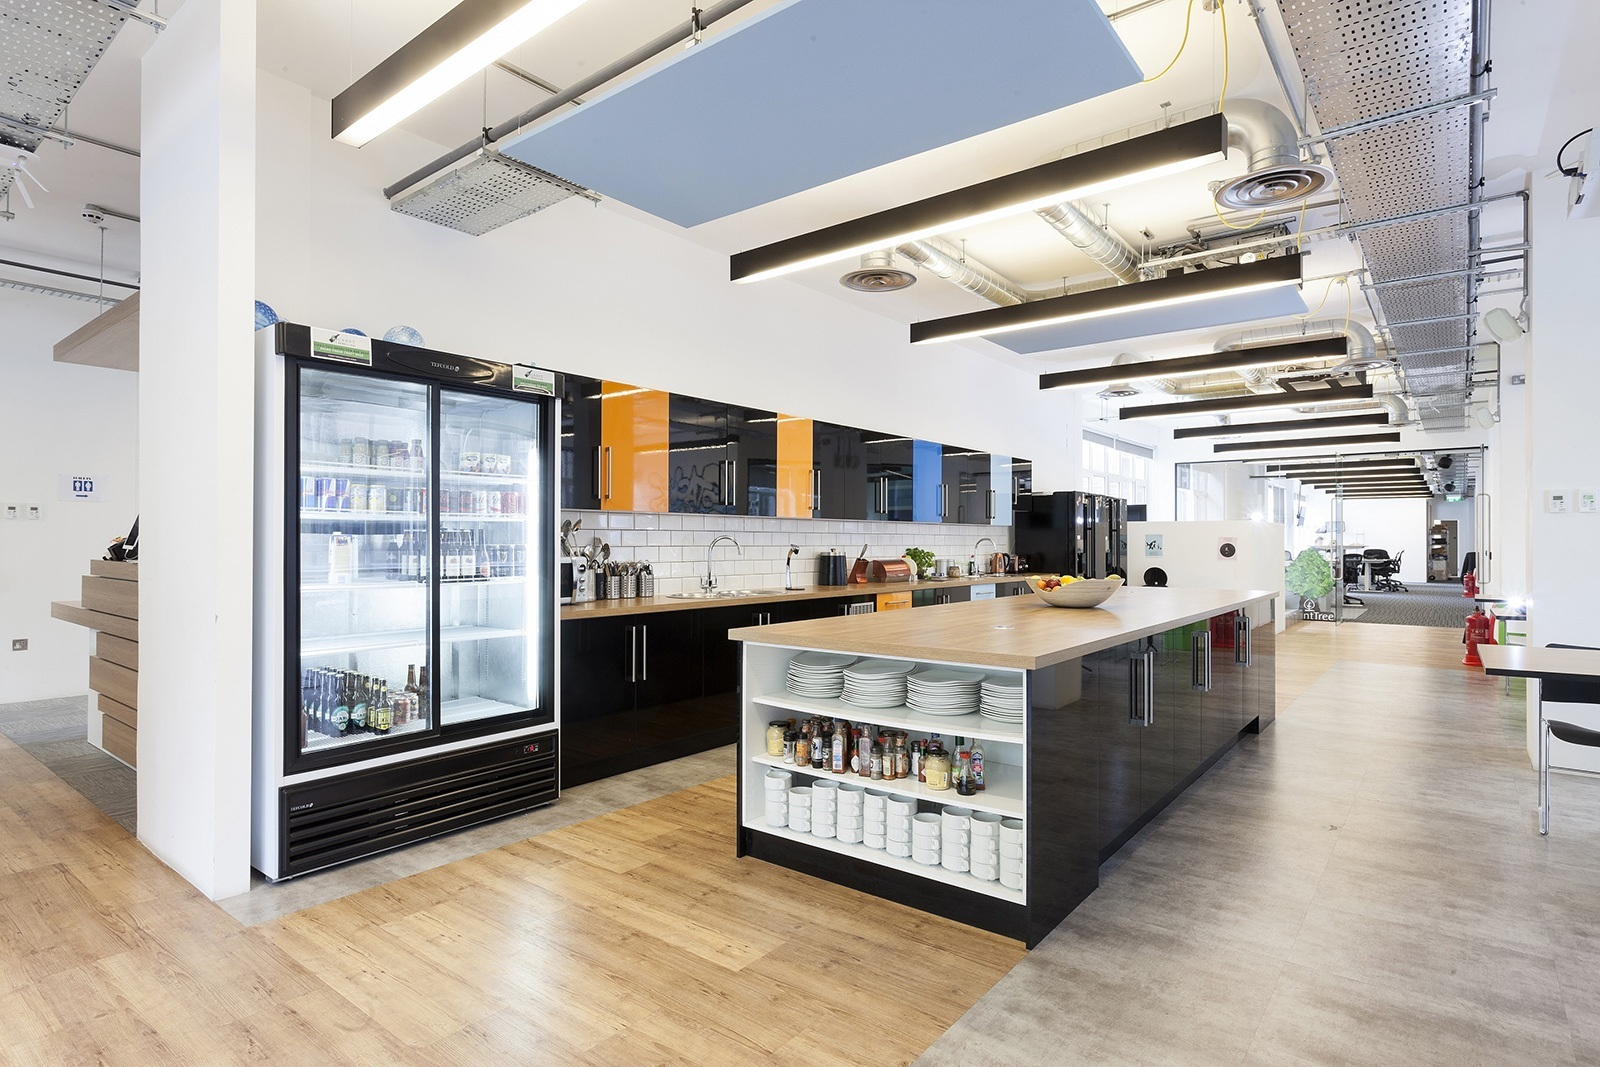 stack-exchange-london-office-3